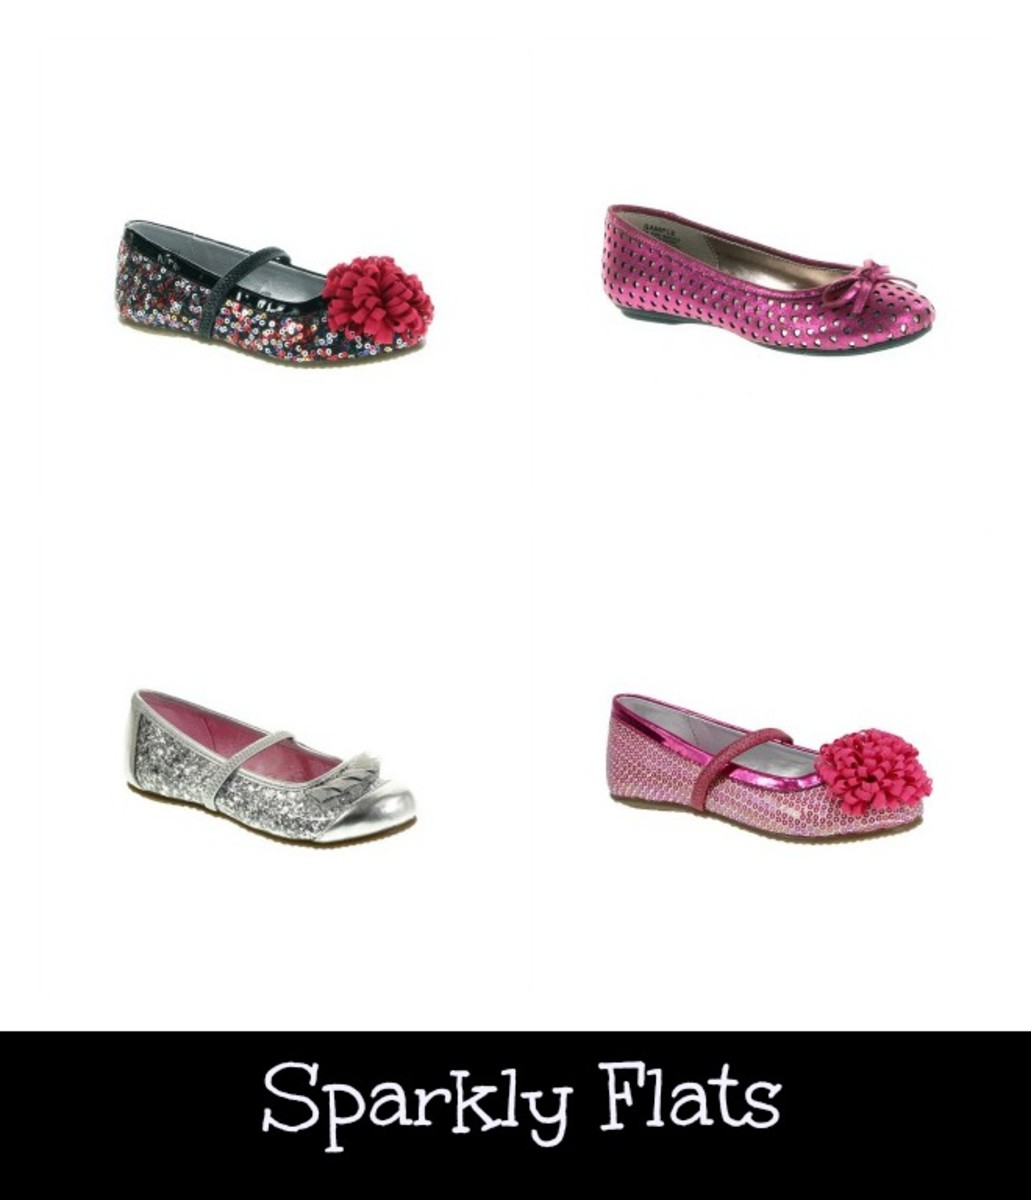 Sparkly Flats, holiday shoes